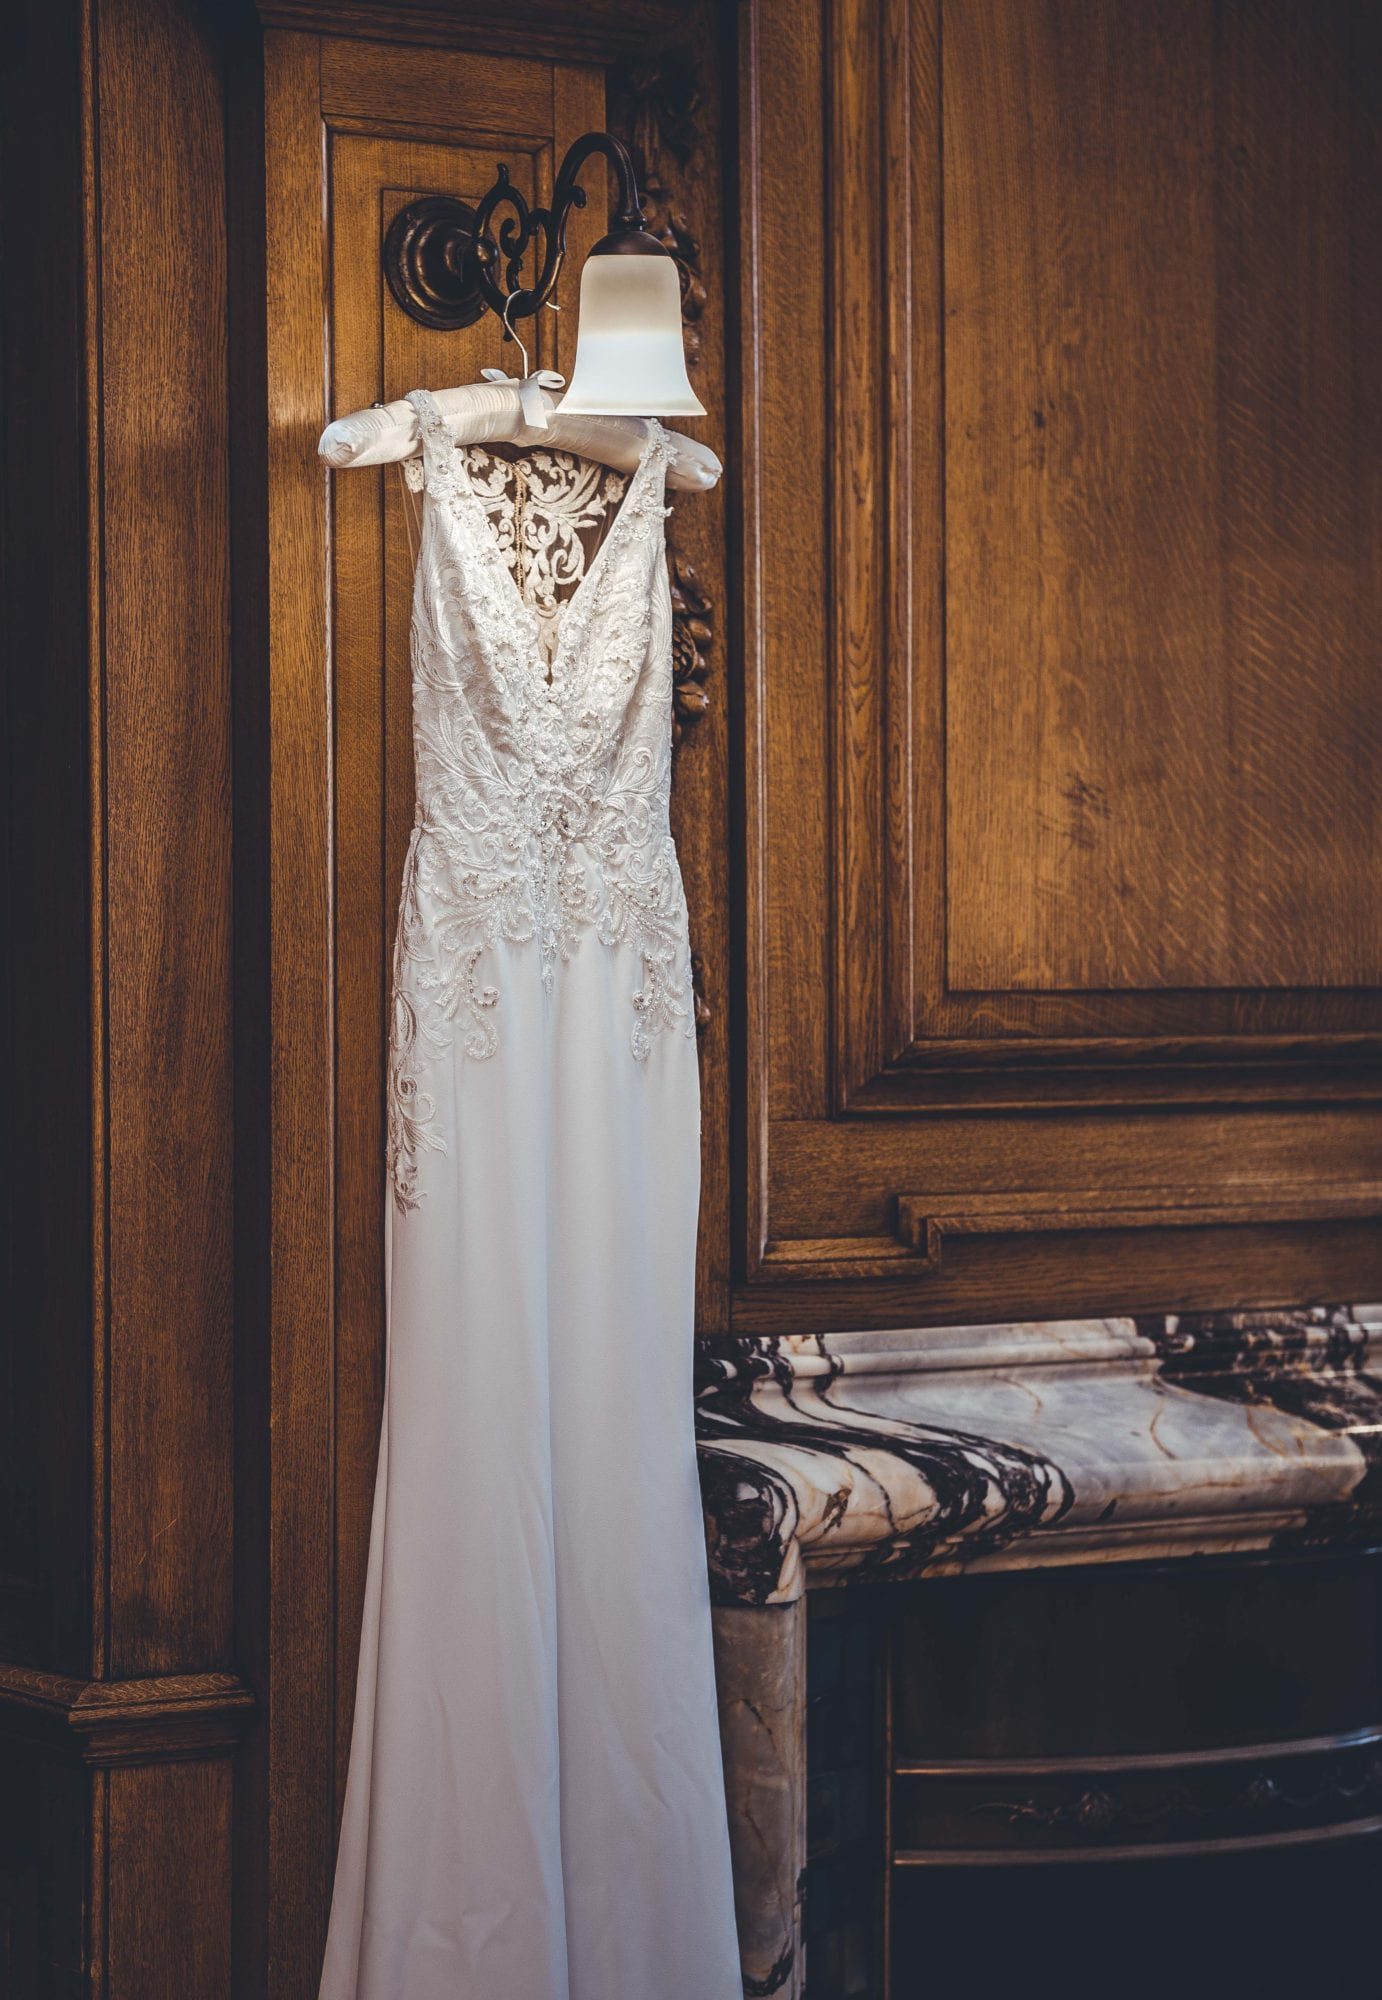 The Grand Wedding Dress